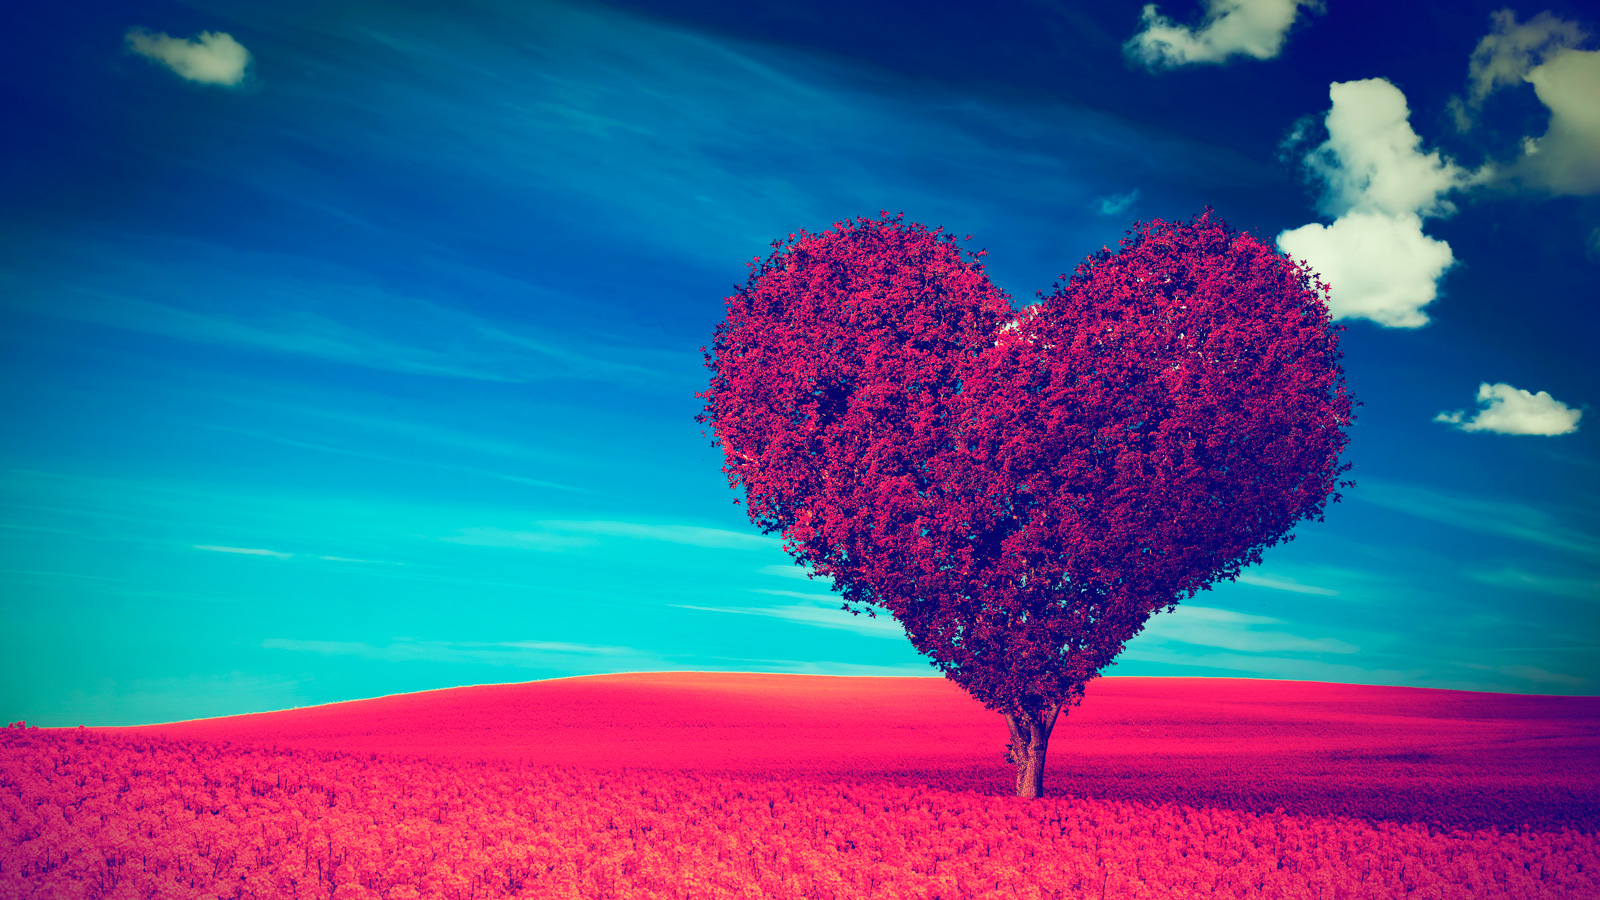 bigstock-Heart-shape-tree-with-red-leav-78243893